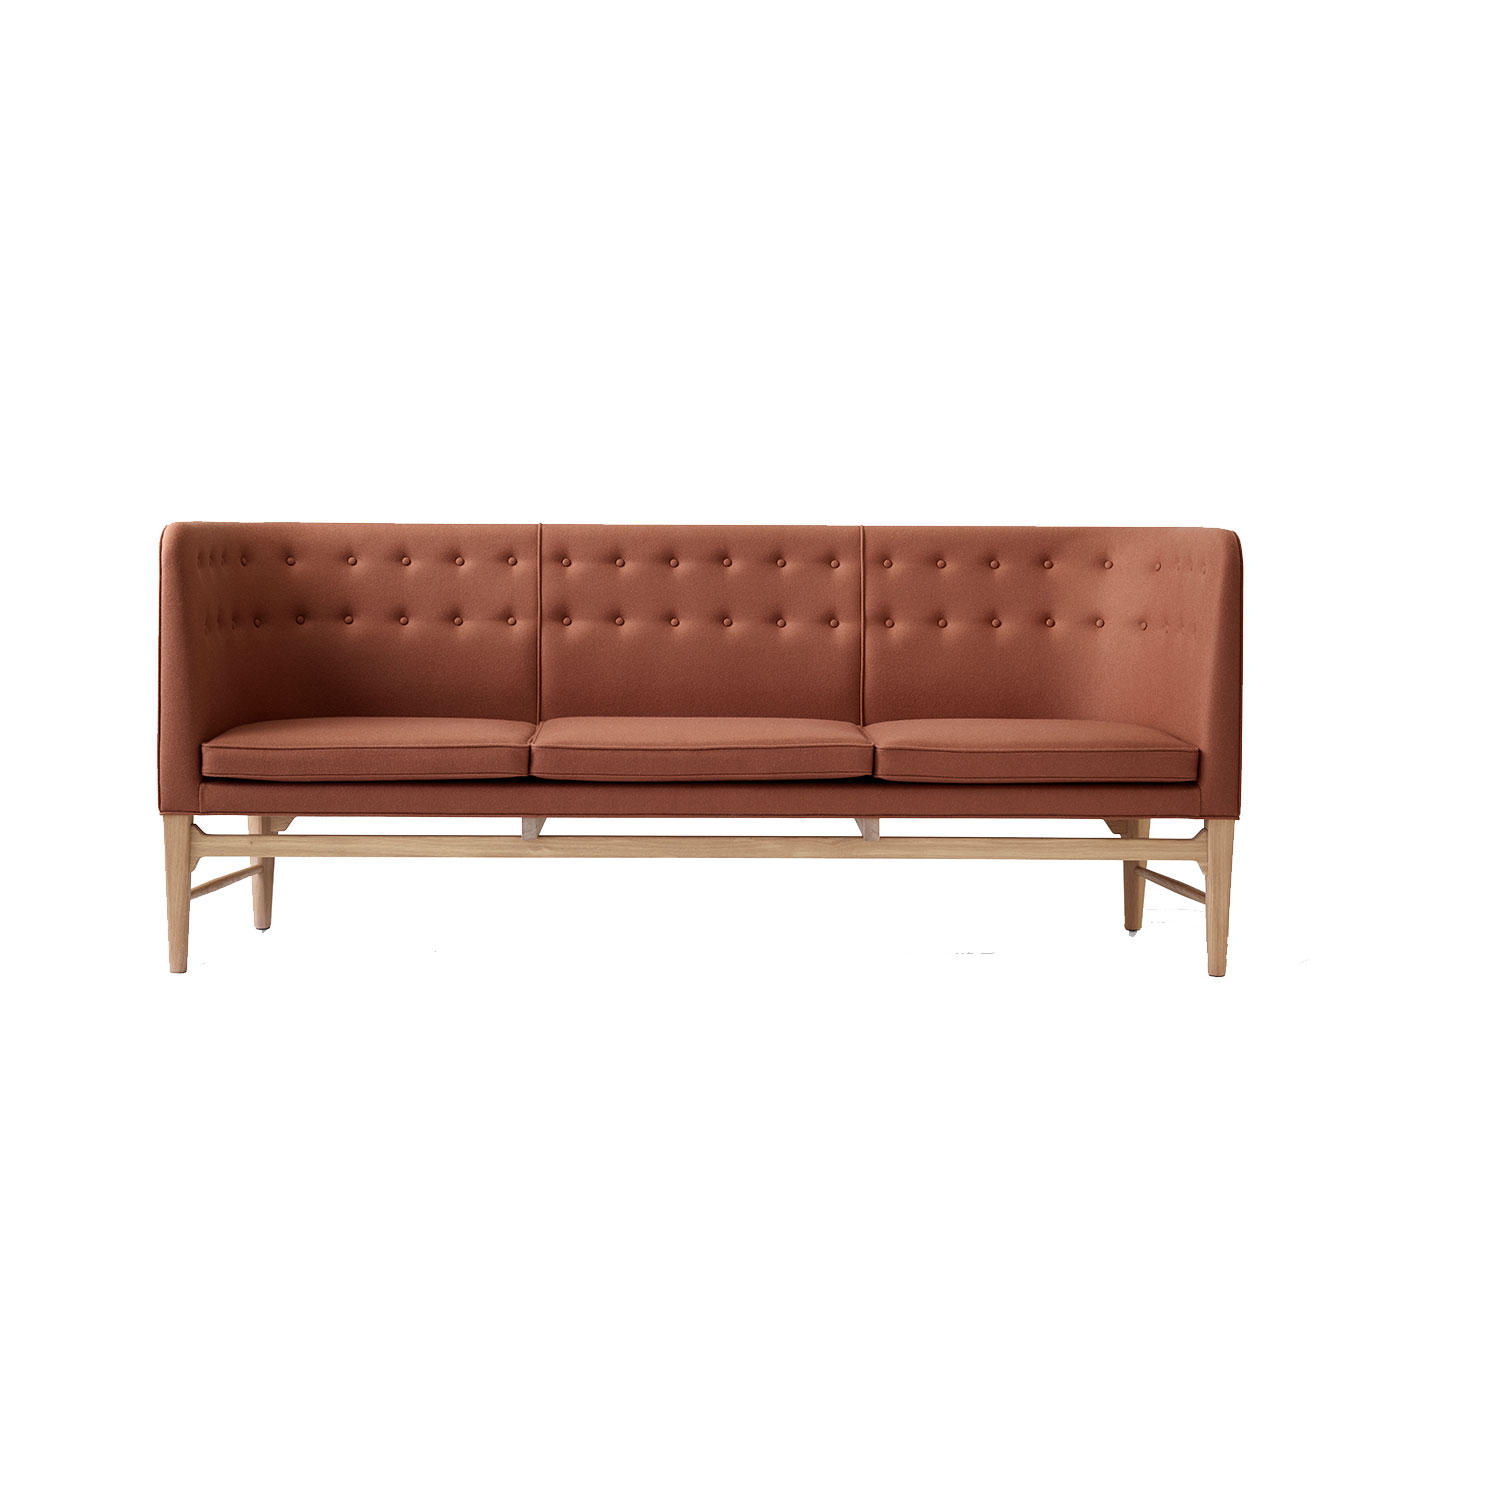 Bilde av &Tradition-Mayor Sofa Aj5, Hvitoljet Eik/Divina 3/346